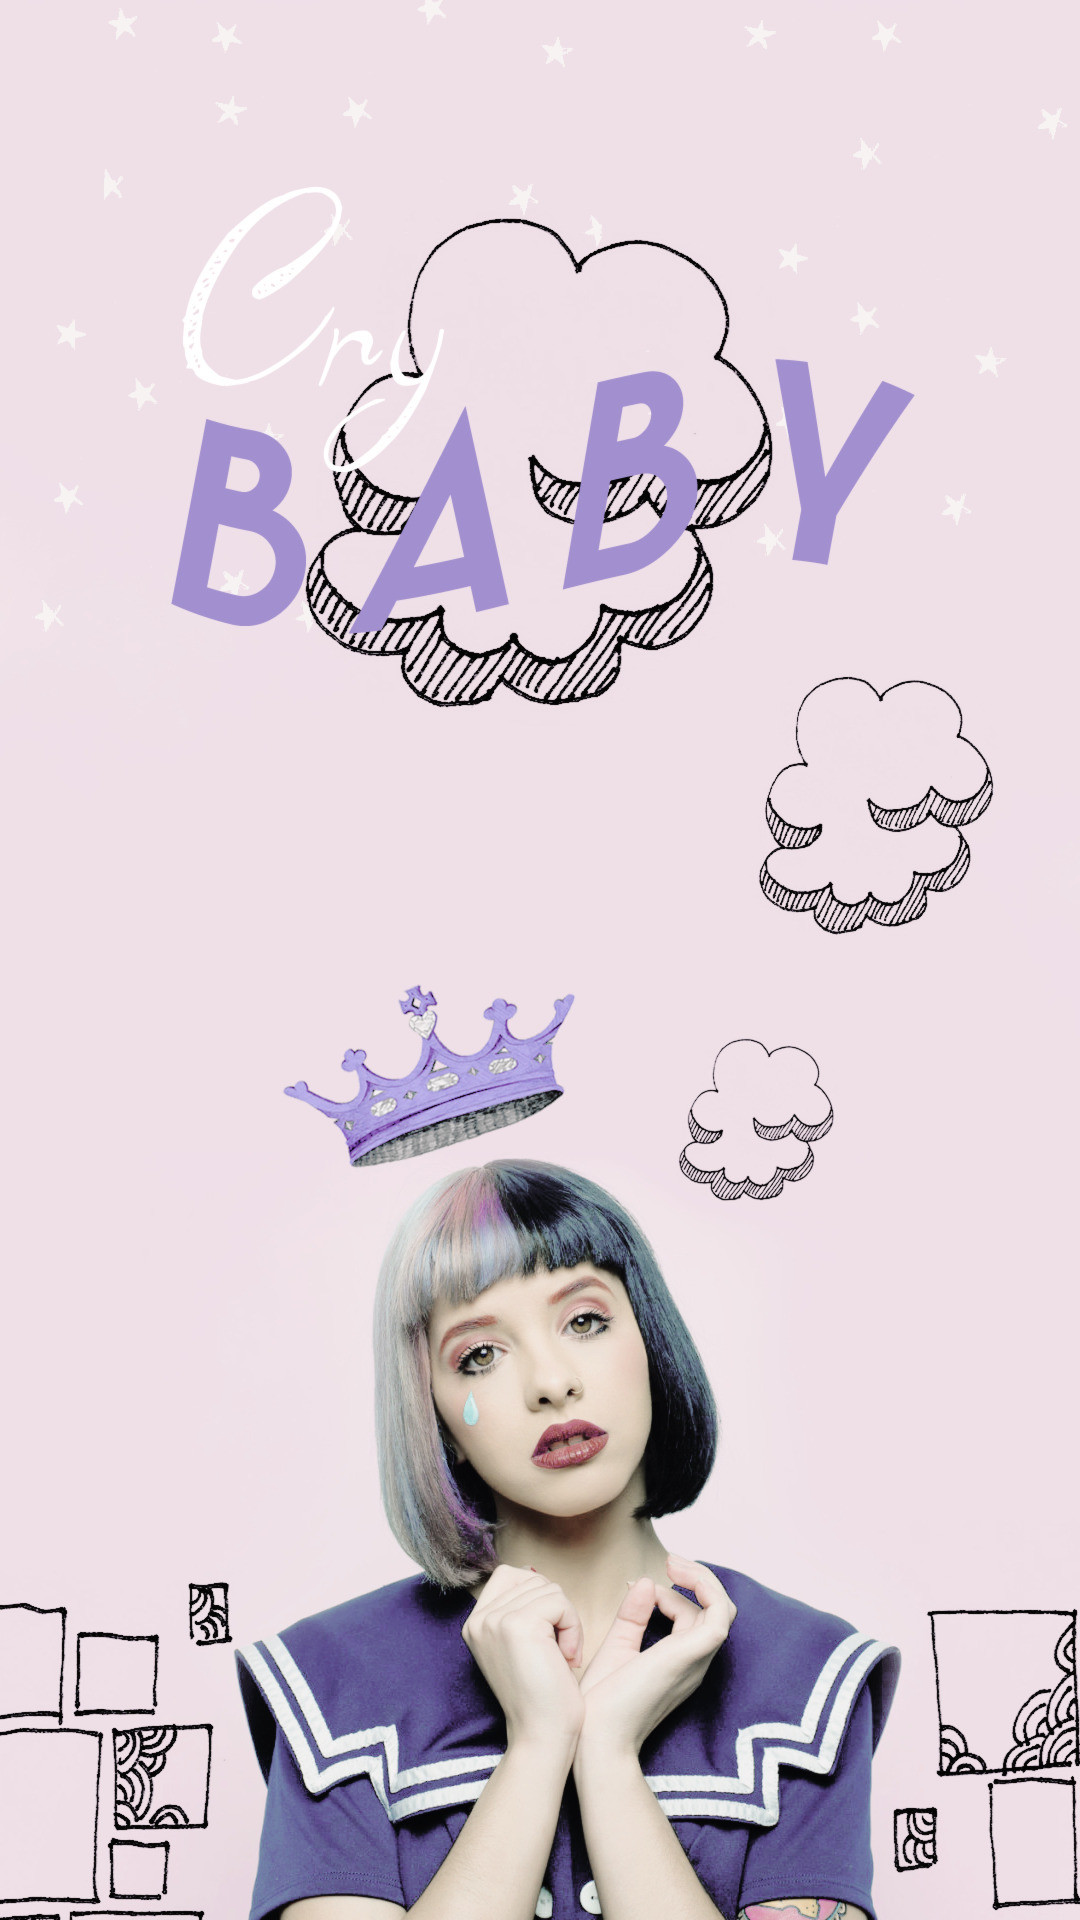 1080x1920 CryBaby — Melanie Martinez - Lock Screen Wallpaper